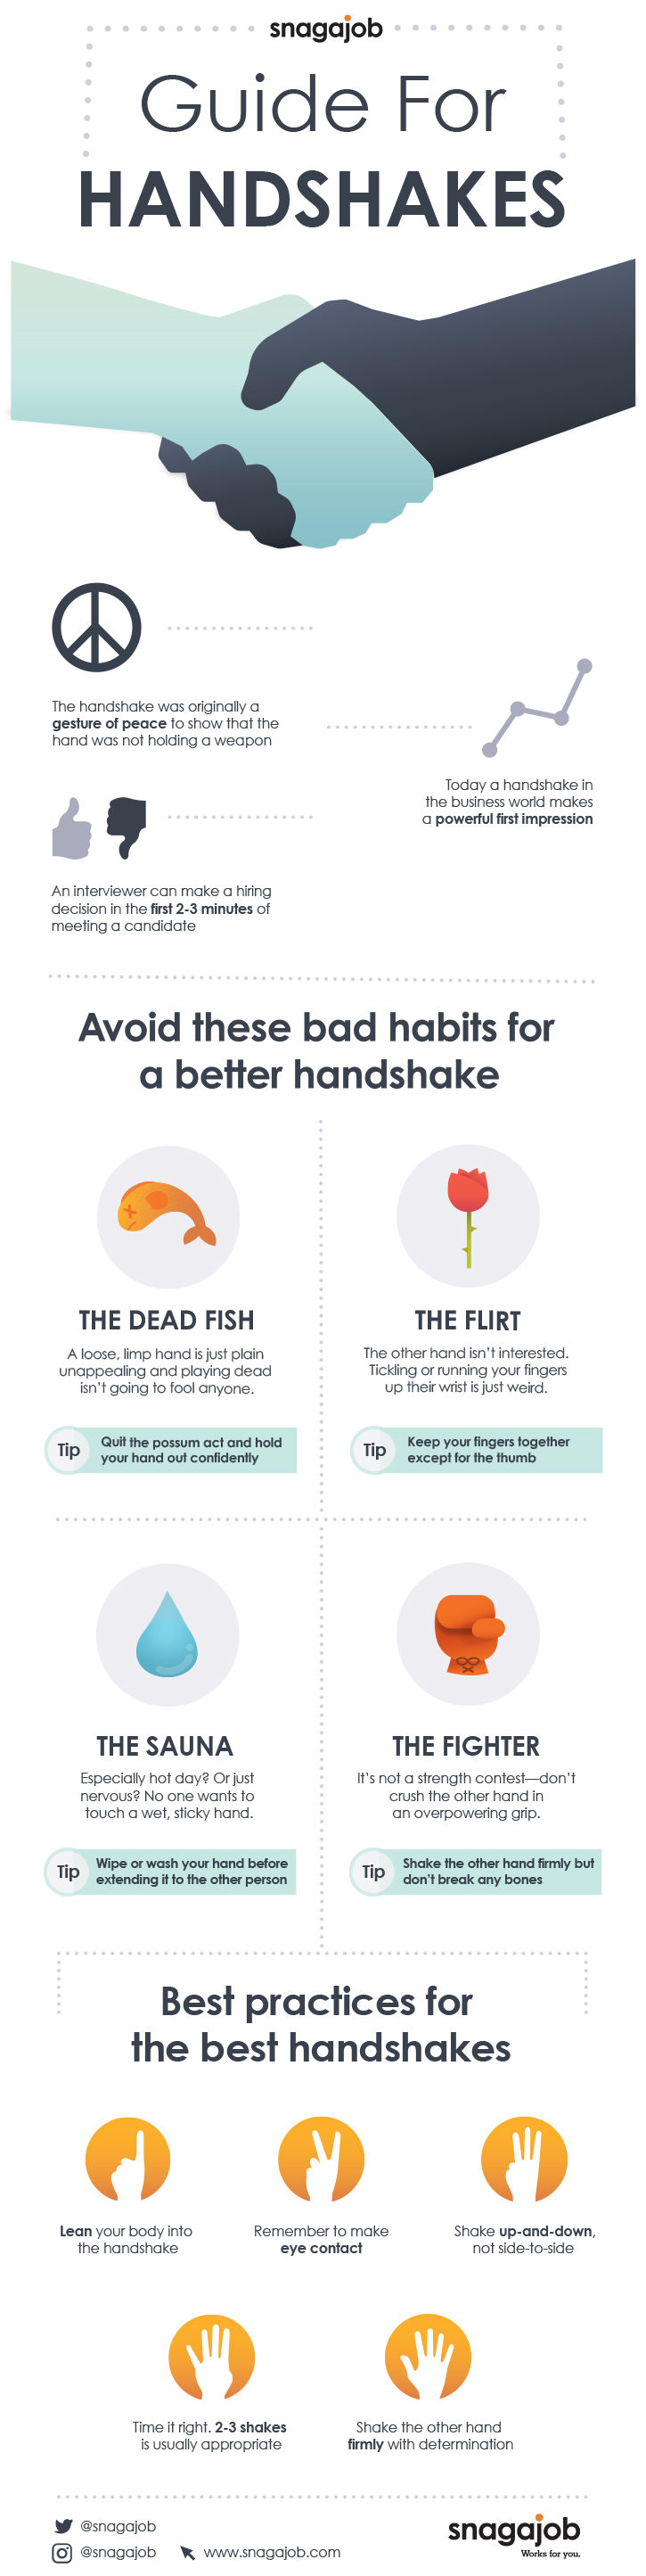 Guide for Handshakes